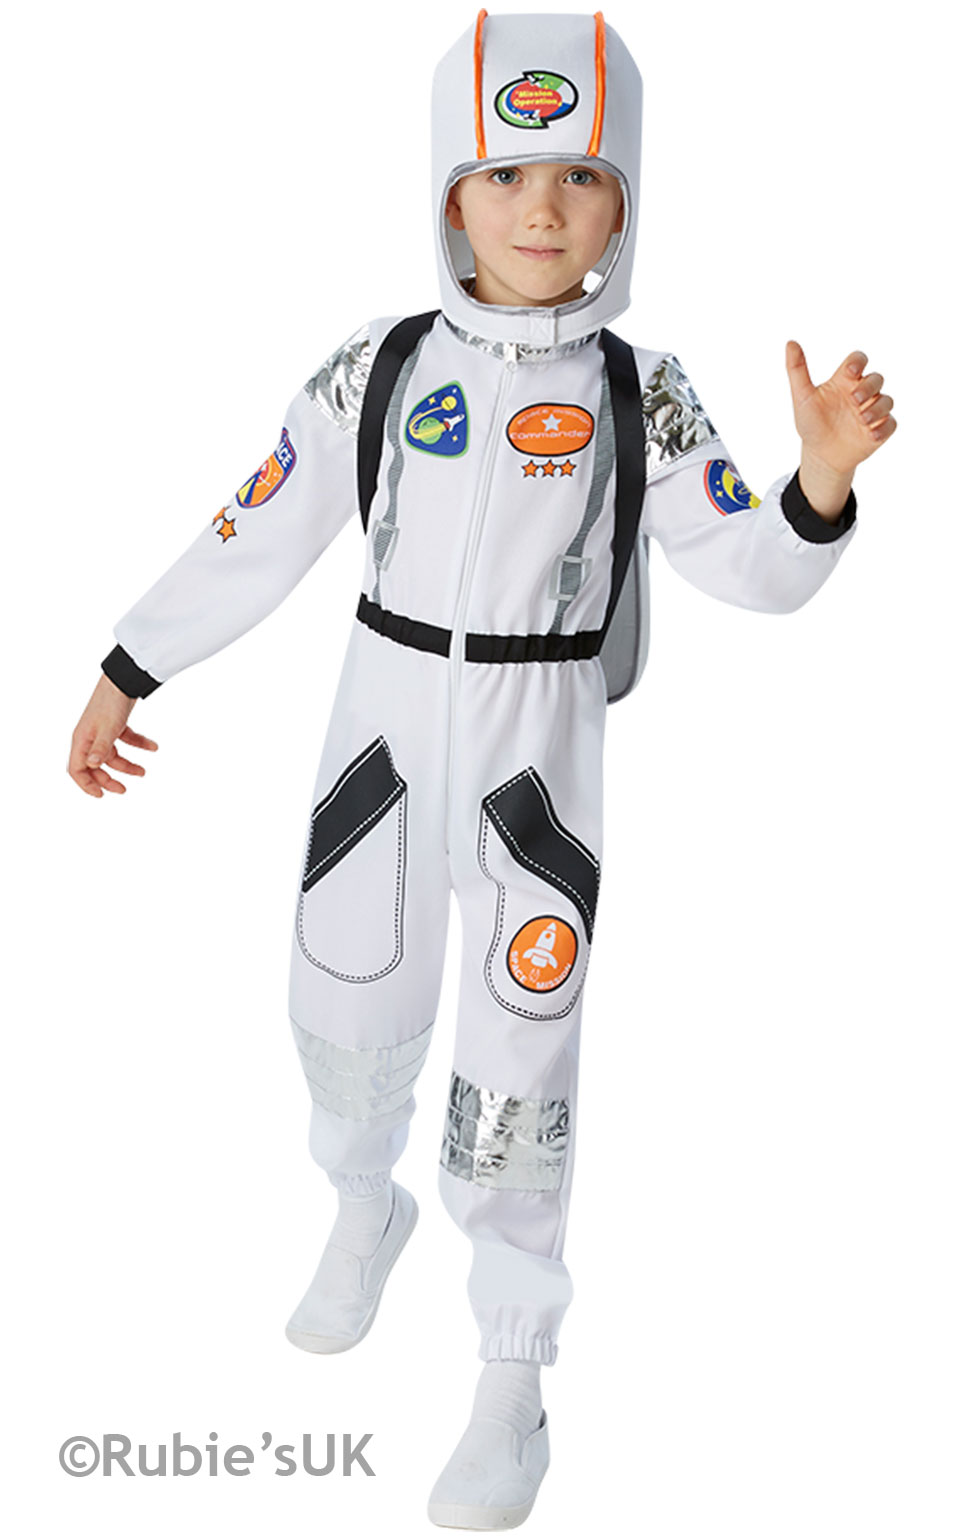 weight nasa astronaut costume - photo #24